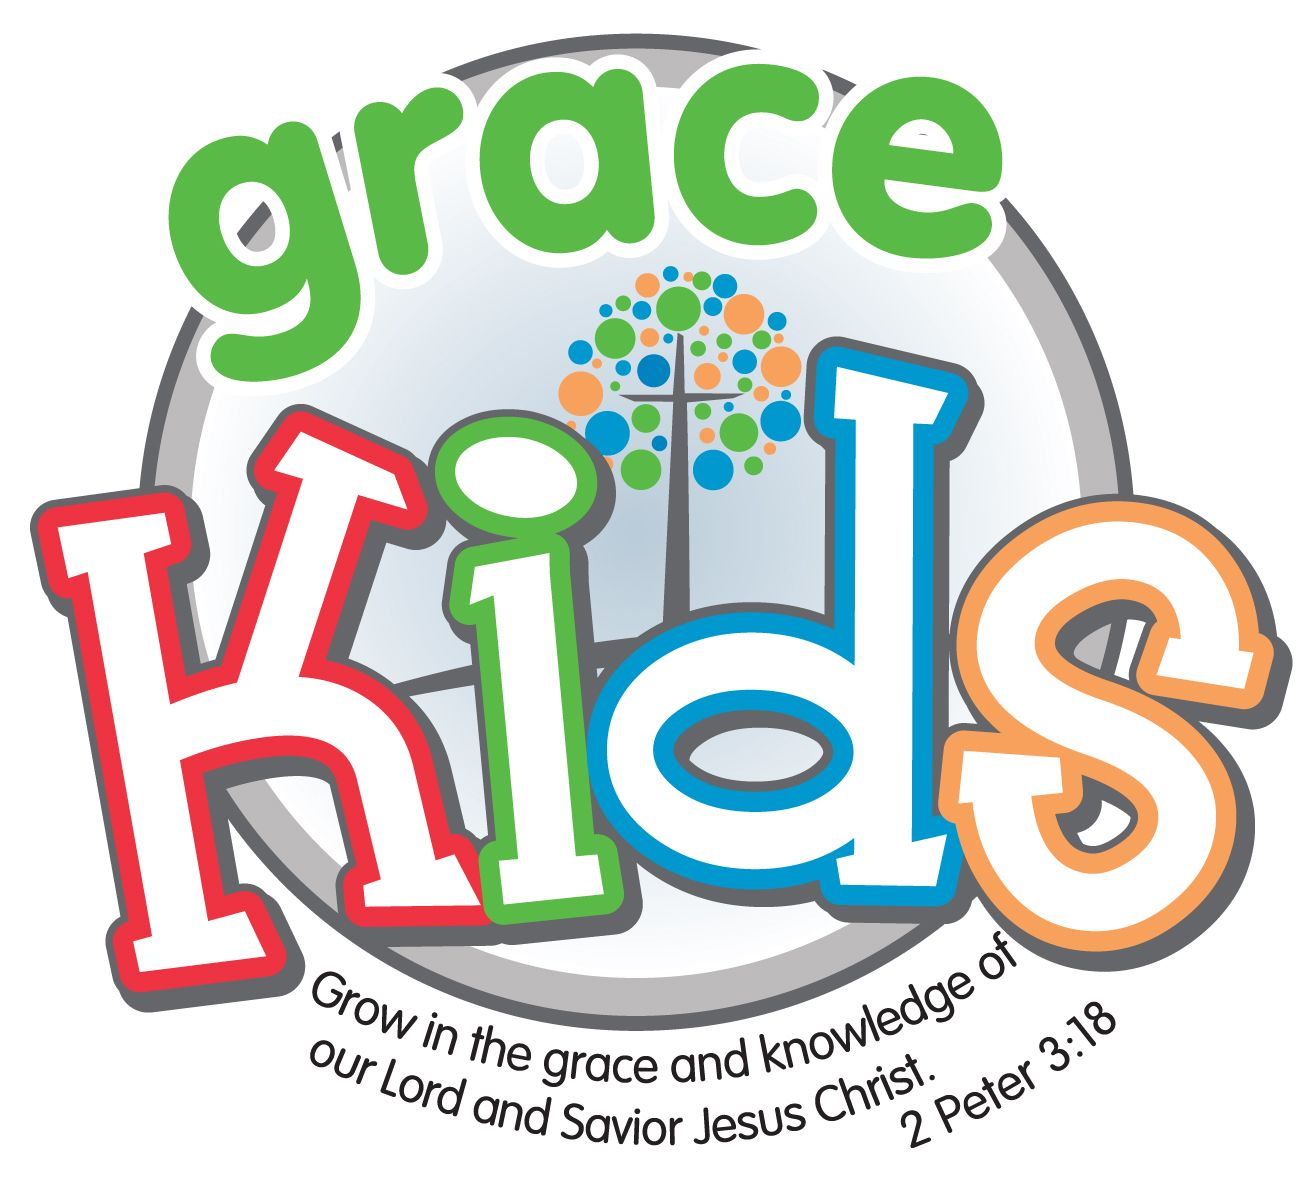 Church Nursery Pictures Google Search: Children's Ministry Logos - Google Search